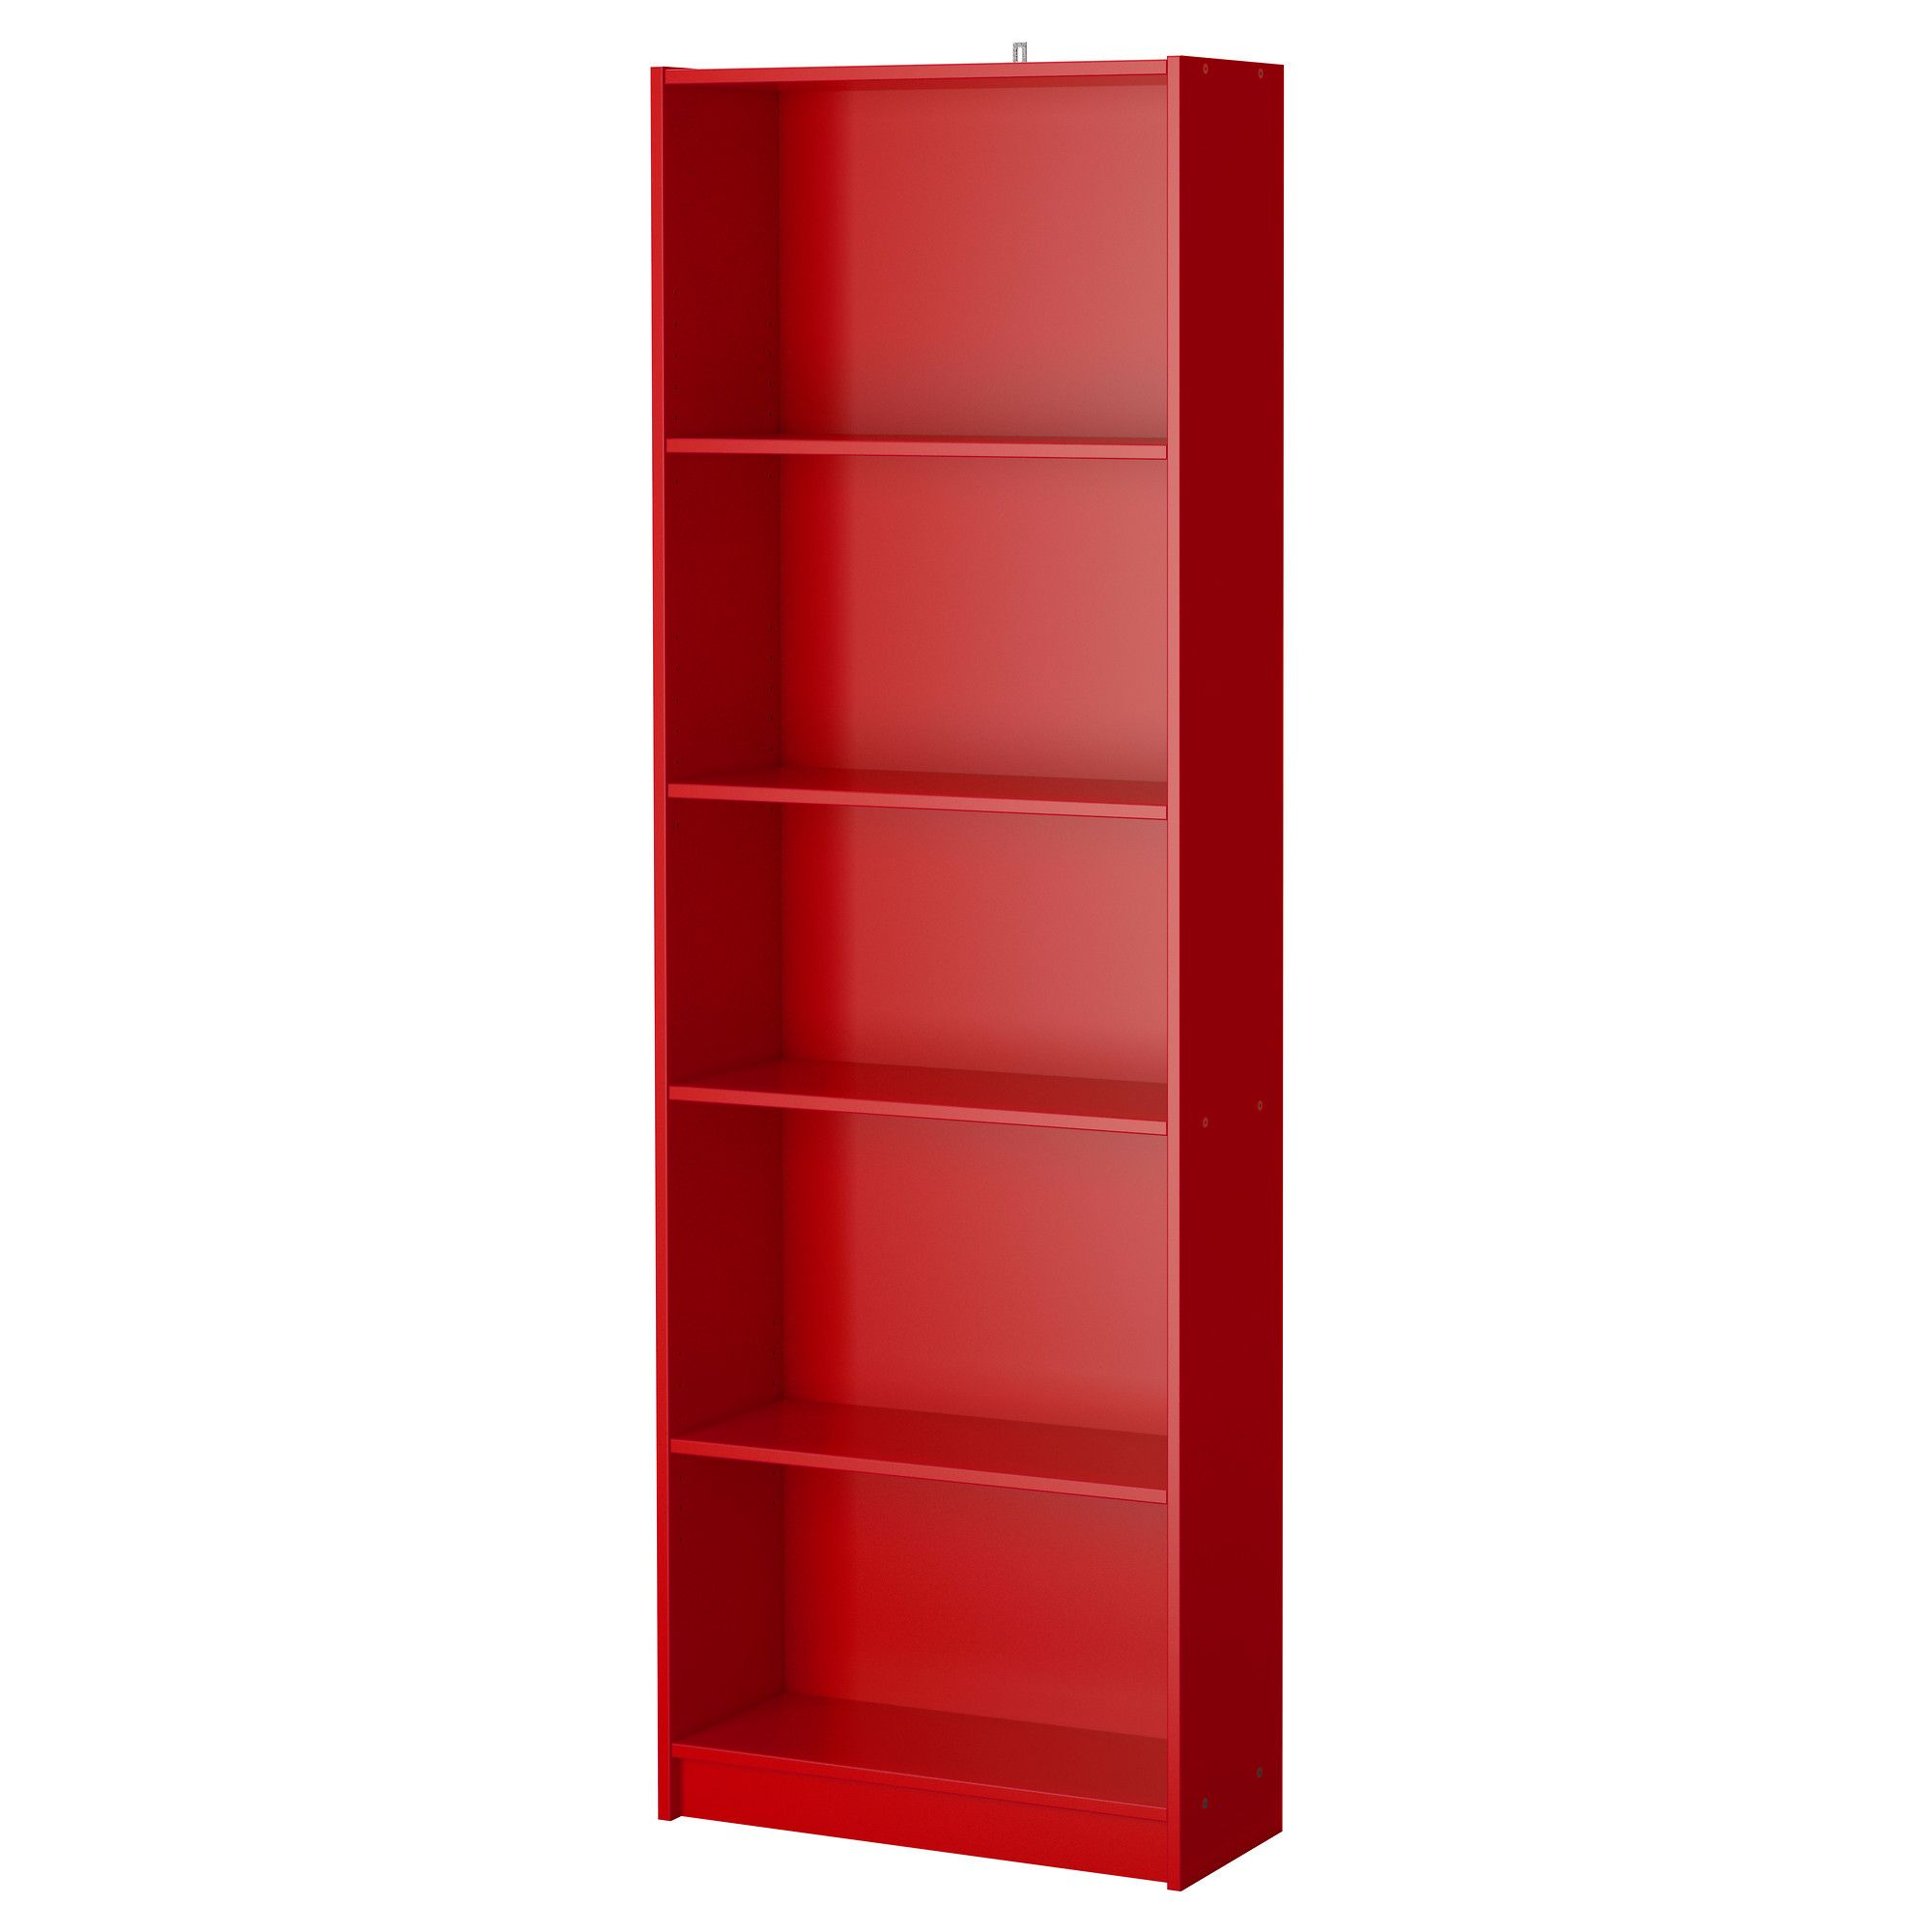 ikea finnby biblioth que rouge quatre tablettes. Black Bedroom Furniture Sets. Home Design Ideas